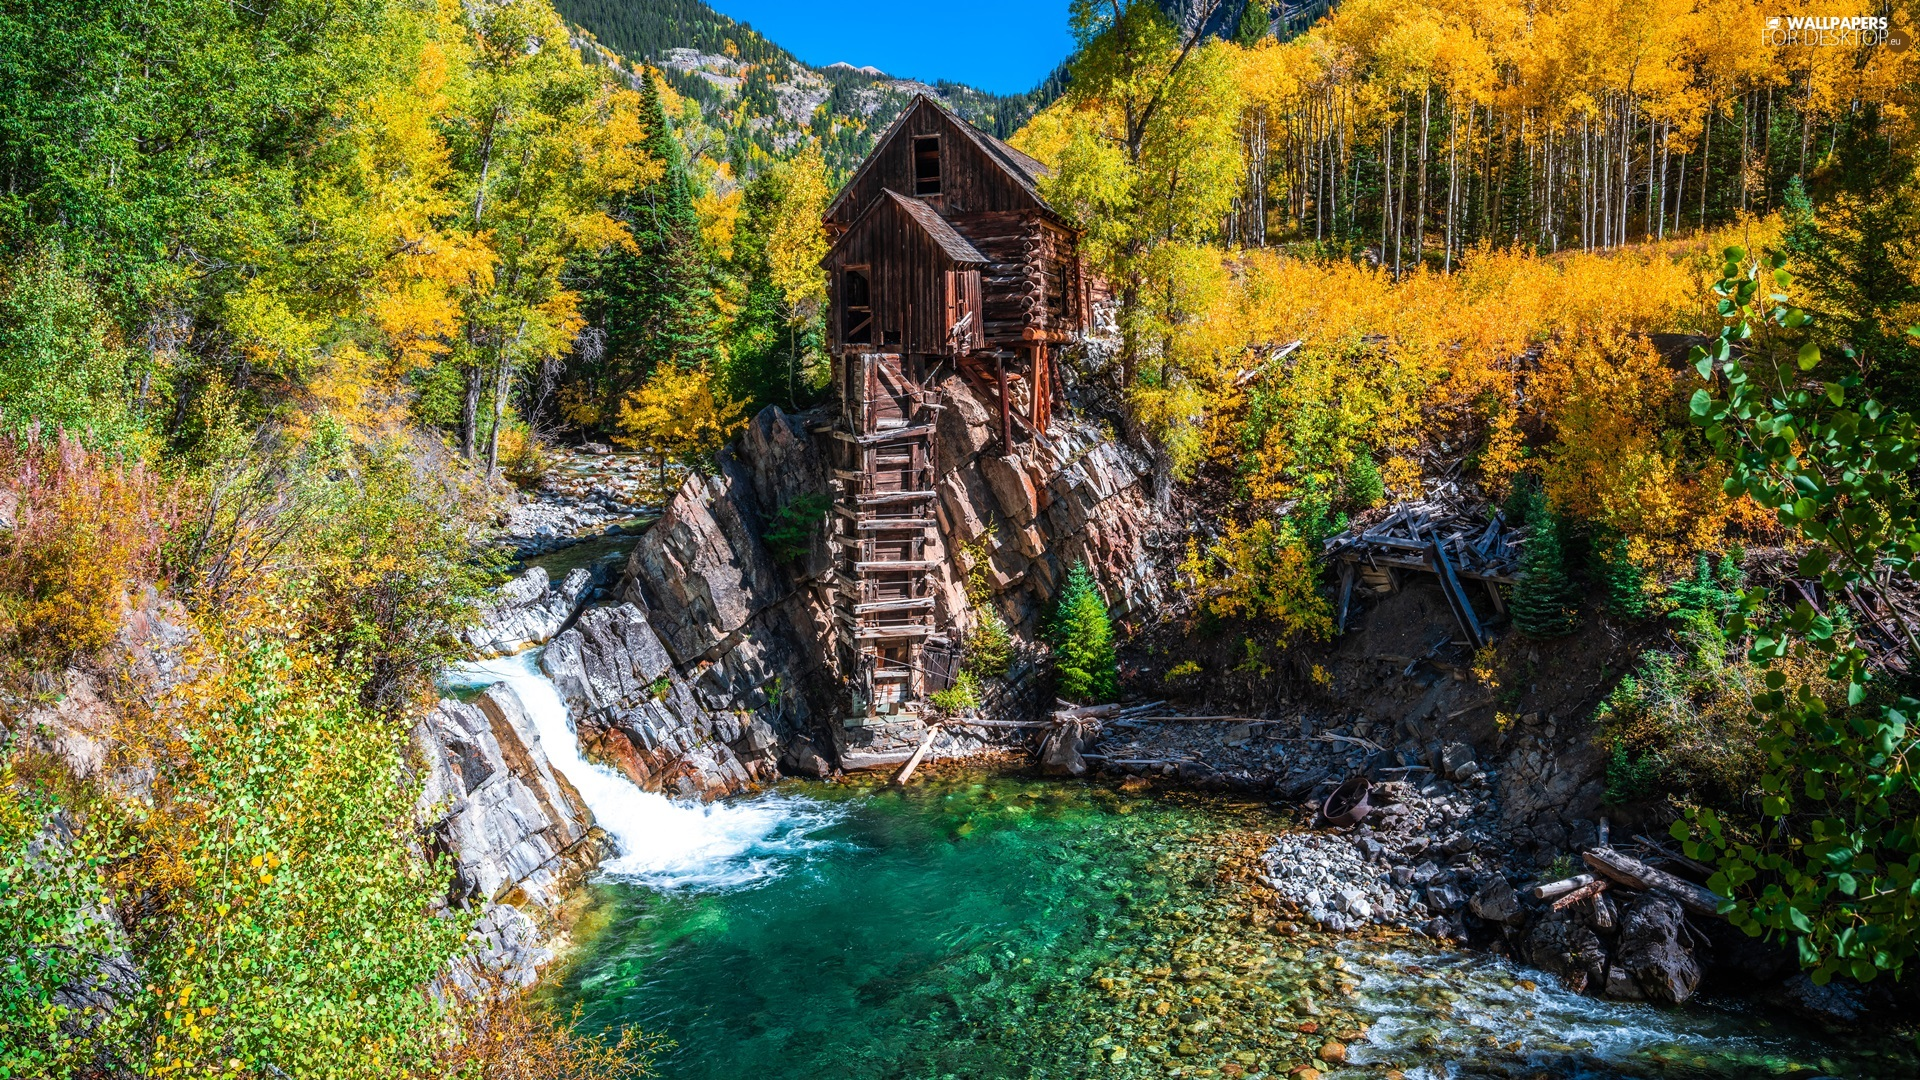 autumn, rocks, The United States, trees, Colorado, Crystal River, Crystal Mill, viewes